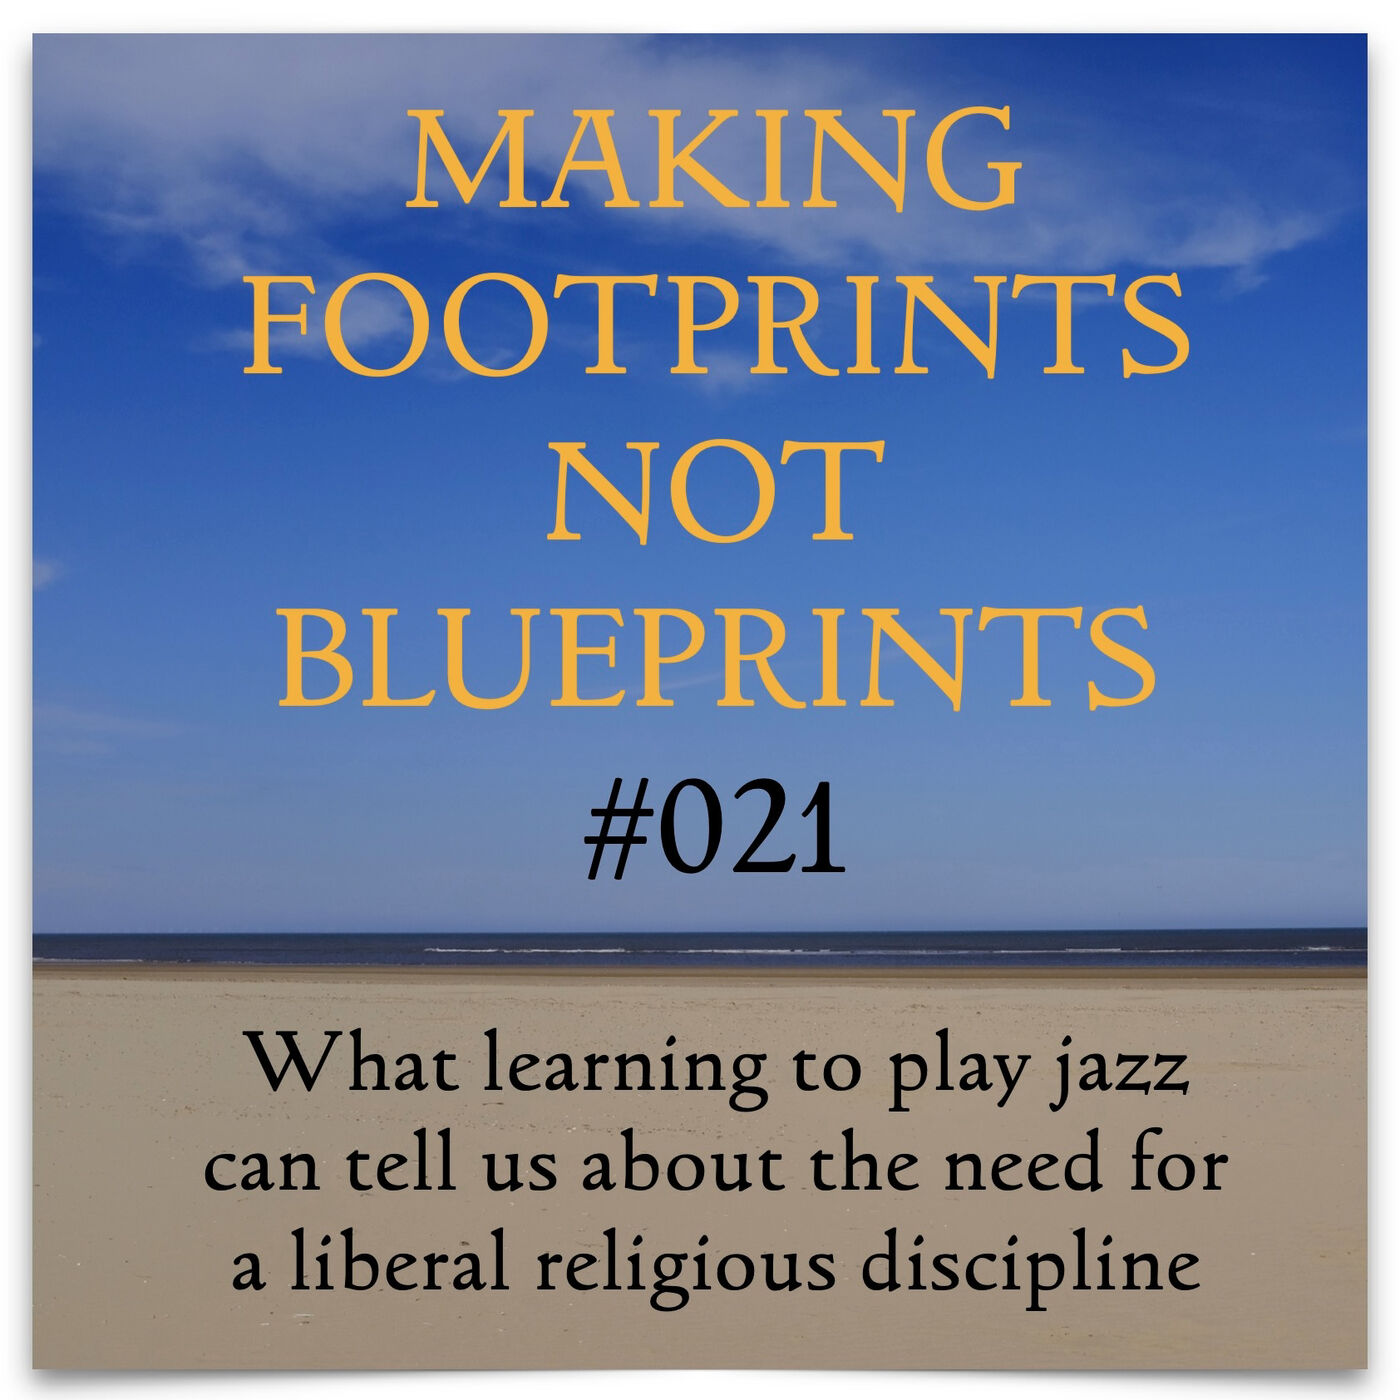 S01 #21 - What learning to play jazz can tell us about the need for a liberal religious discipline